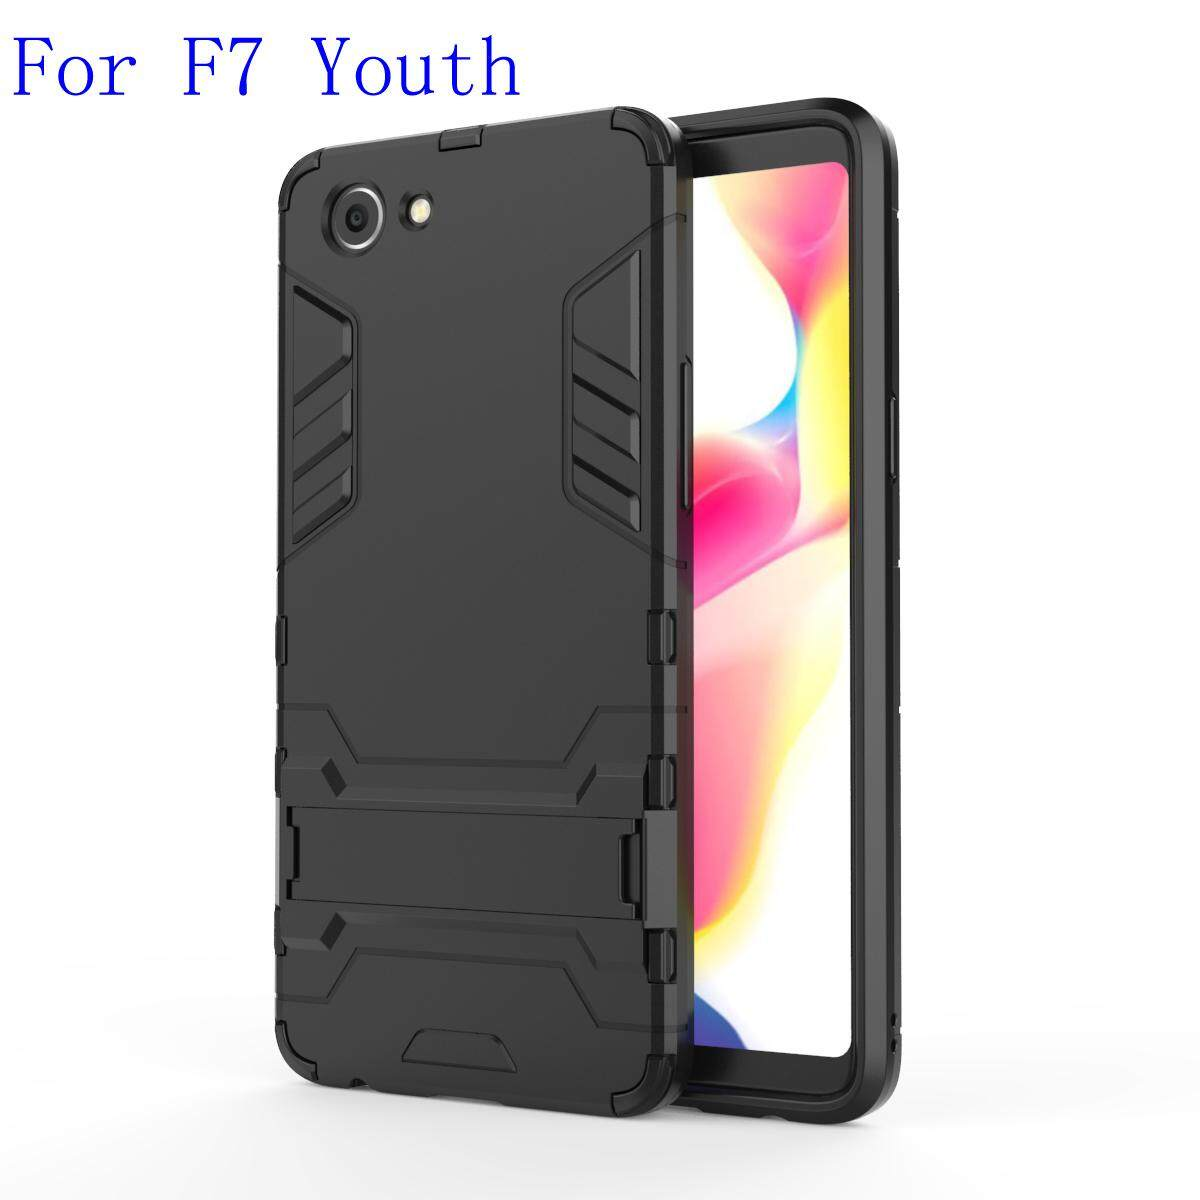 For Oppo F7 Youth Case Dual Layer Shockproof Casing Built-in Stand Cover For F7 Youth